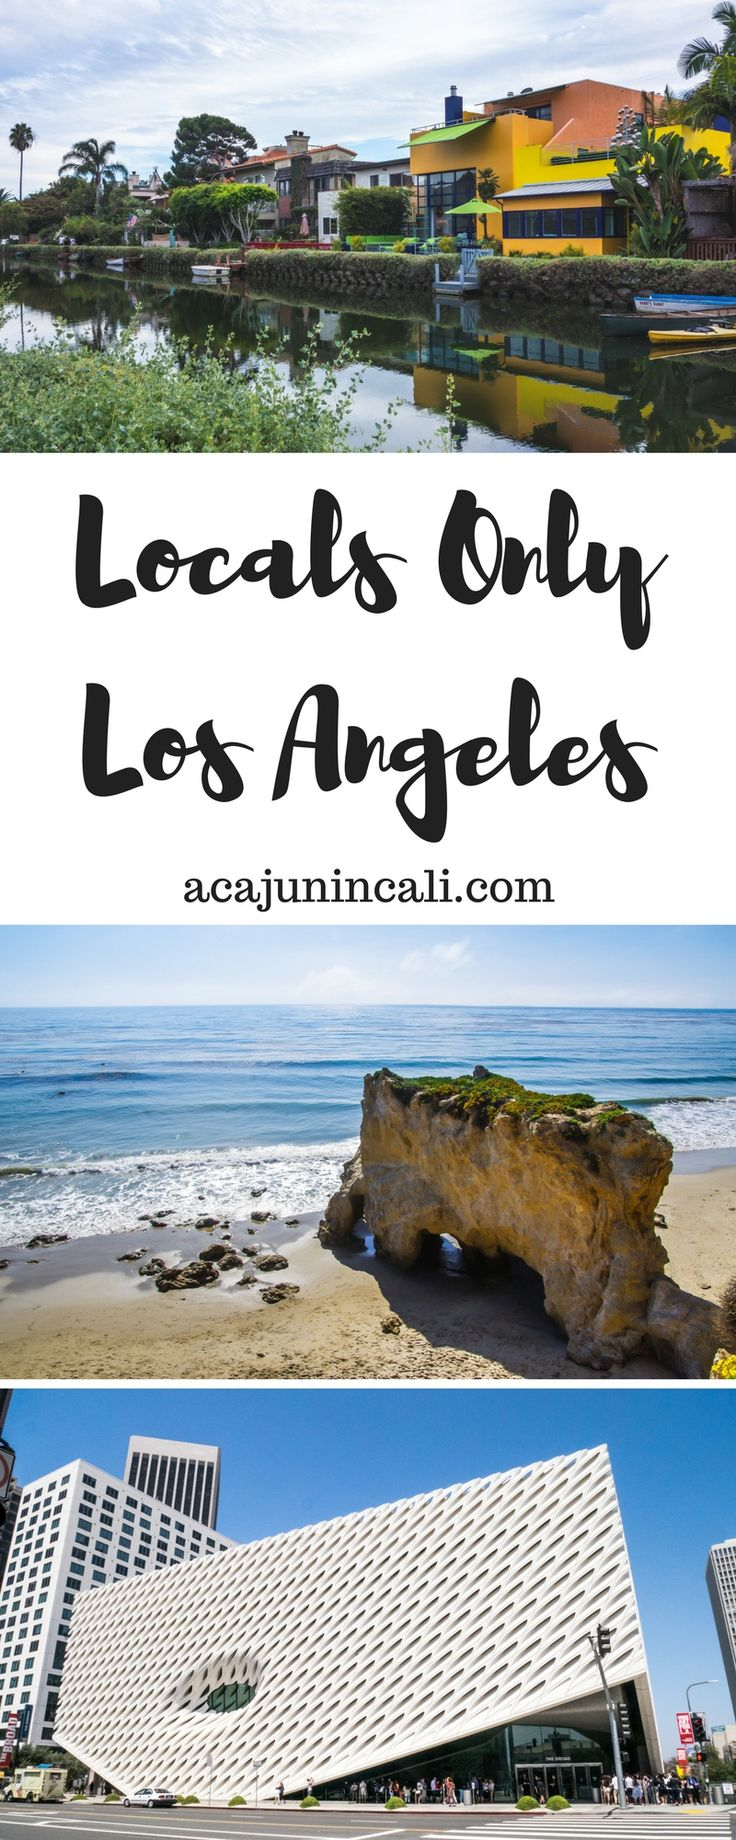 locals only Los Angeles | unusual things to do in Los Angeles | hidden gems of Los Angeles | first visit to Los Angeles | first time in Los Angeles | visiting Los Angeles | where to go in Los Angeles | what to do in Los Angeles | Los Angeles attractions | visiting LA | things to do in Los Angeles | Los Angeles tours | what to do in LA | places to visit in Los Angeles